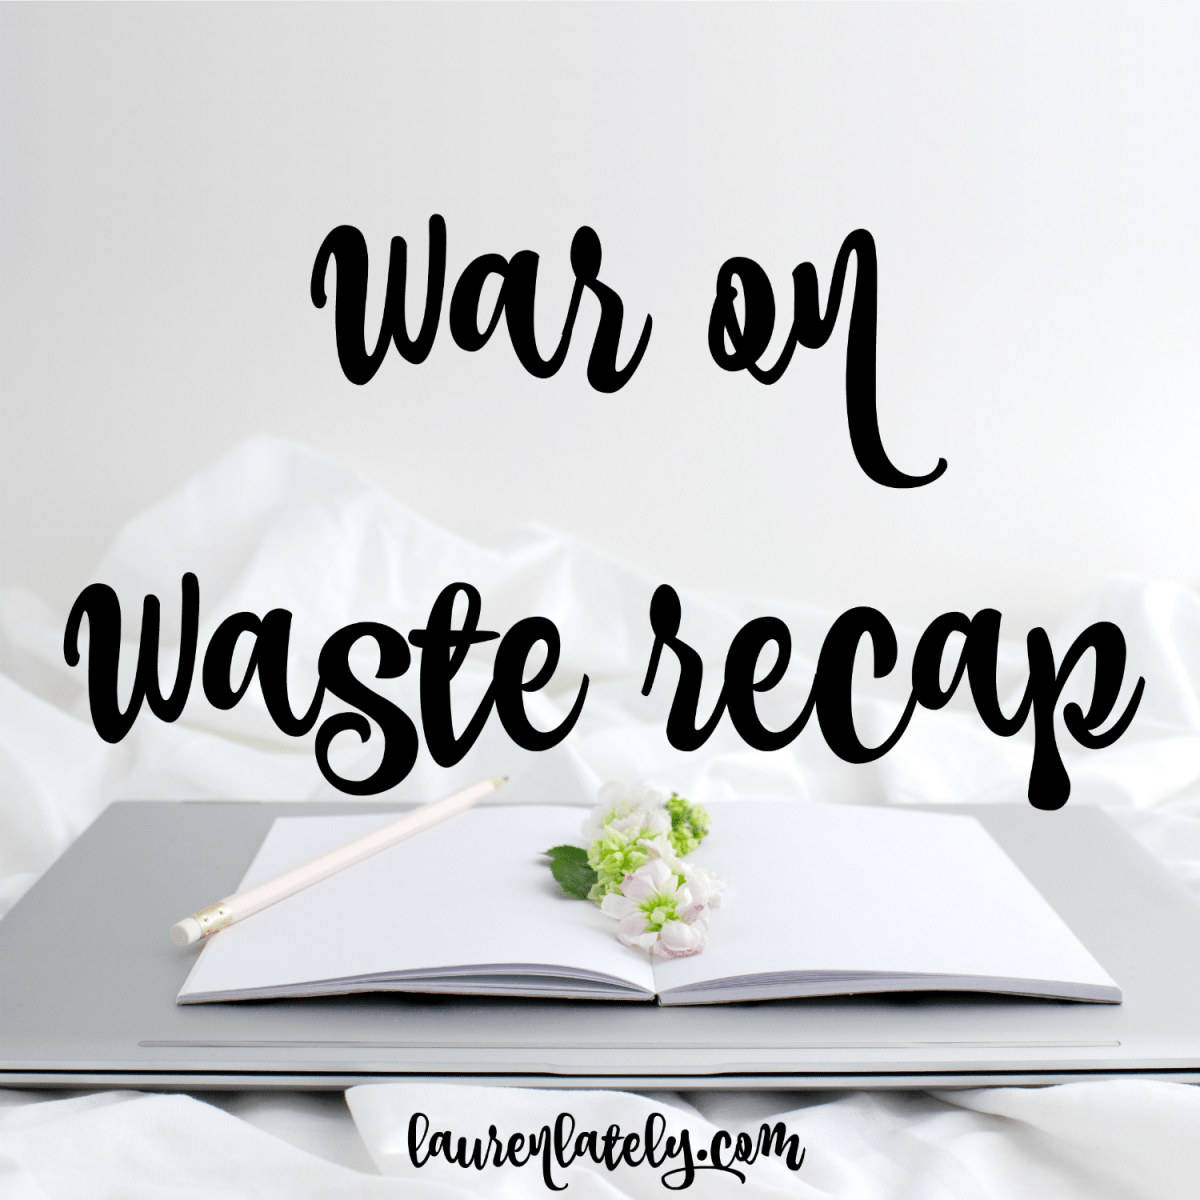 War On Waste recap: my main takeaways from the series